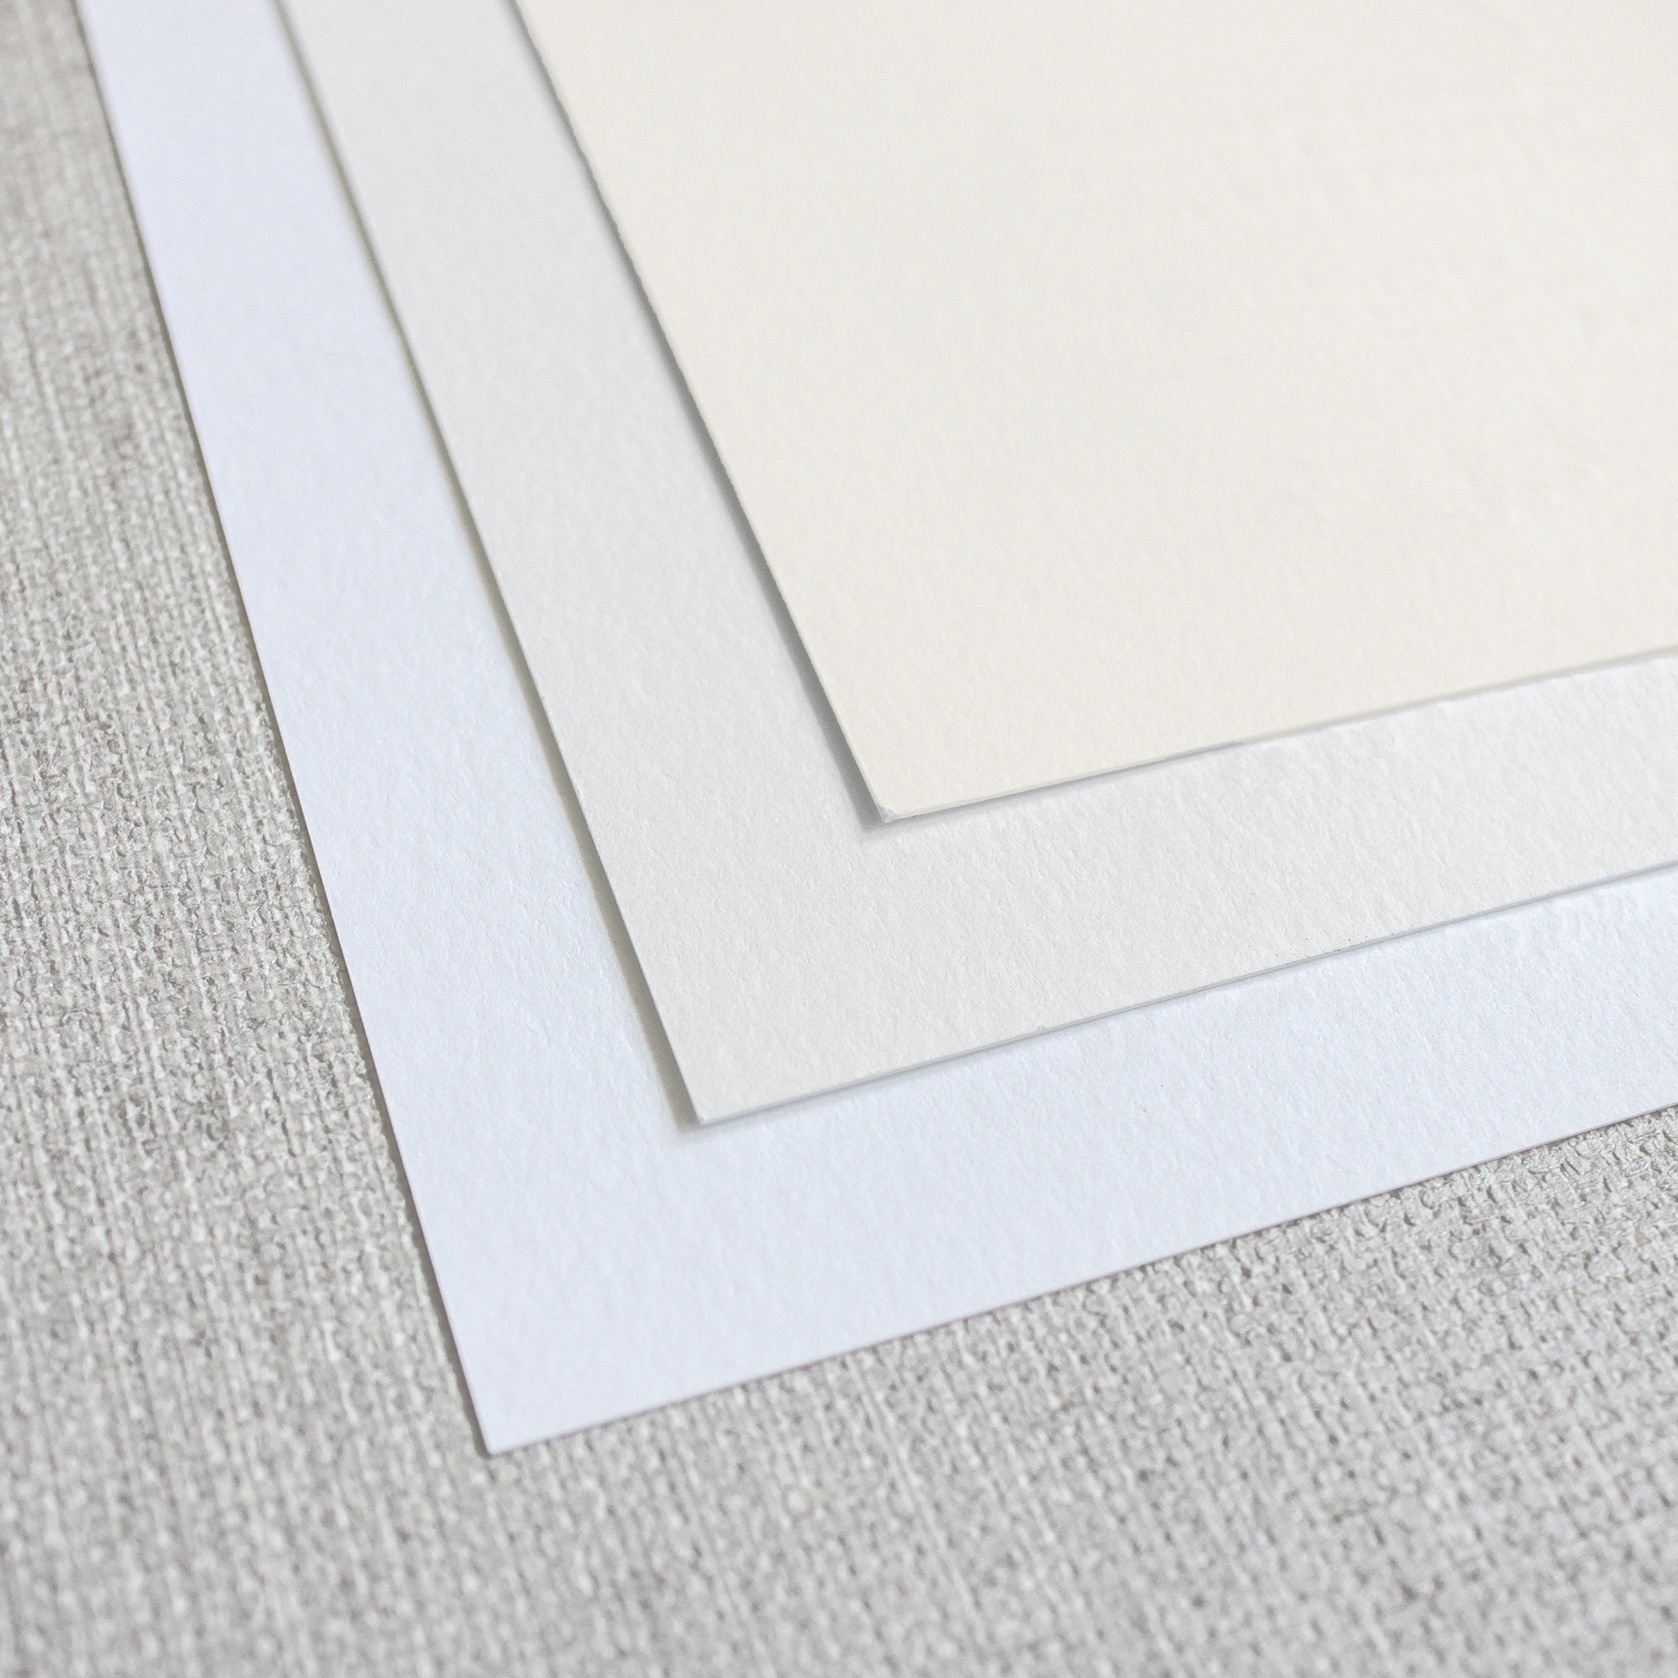 standard stock - Our standard stock for letterpress is a #110 cranes lettra in ultra white, standard white or ivory. Cranes lettra paper is soft to the touch and has a beautiful but smooth texture.